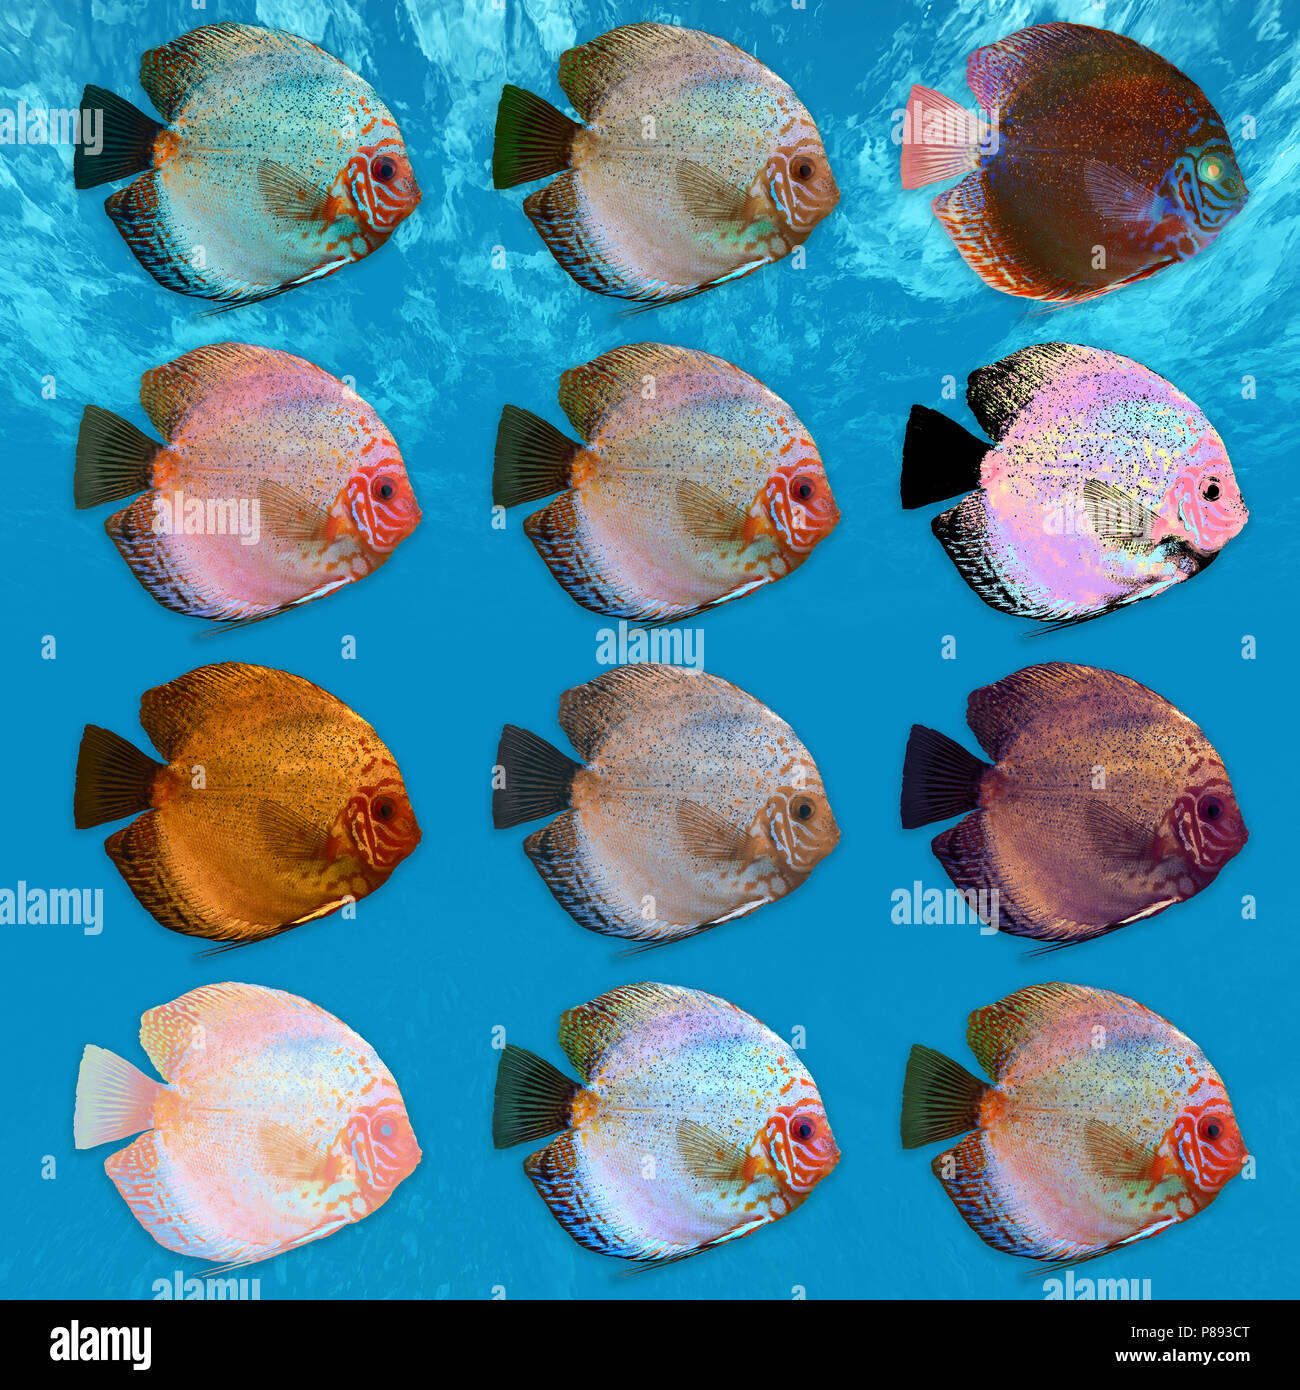 Digitally enhanced image of 12 color variations of Symphysodon, (colloquially known as discus) fresh water aquarium fish. - Stock Image